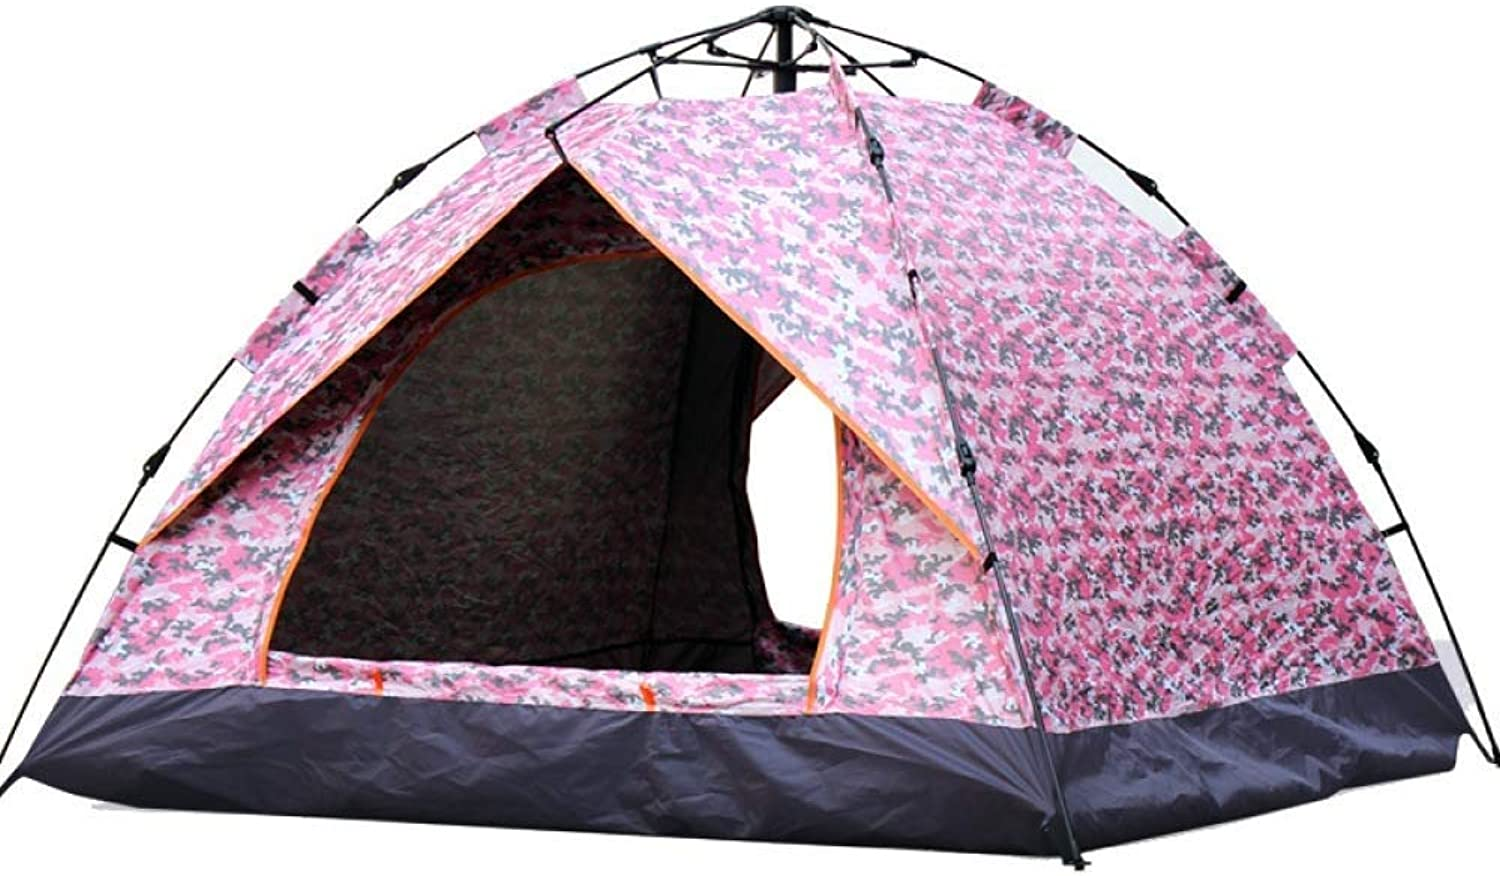 Outdoor Camping Tent 34 People Ultra Light Portable Sunscreen Waterproof Camping Tourism Beach Holiday Picnic Park Lawn 2 Patterns Available (color   B)